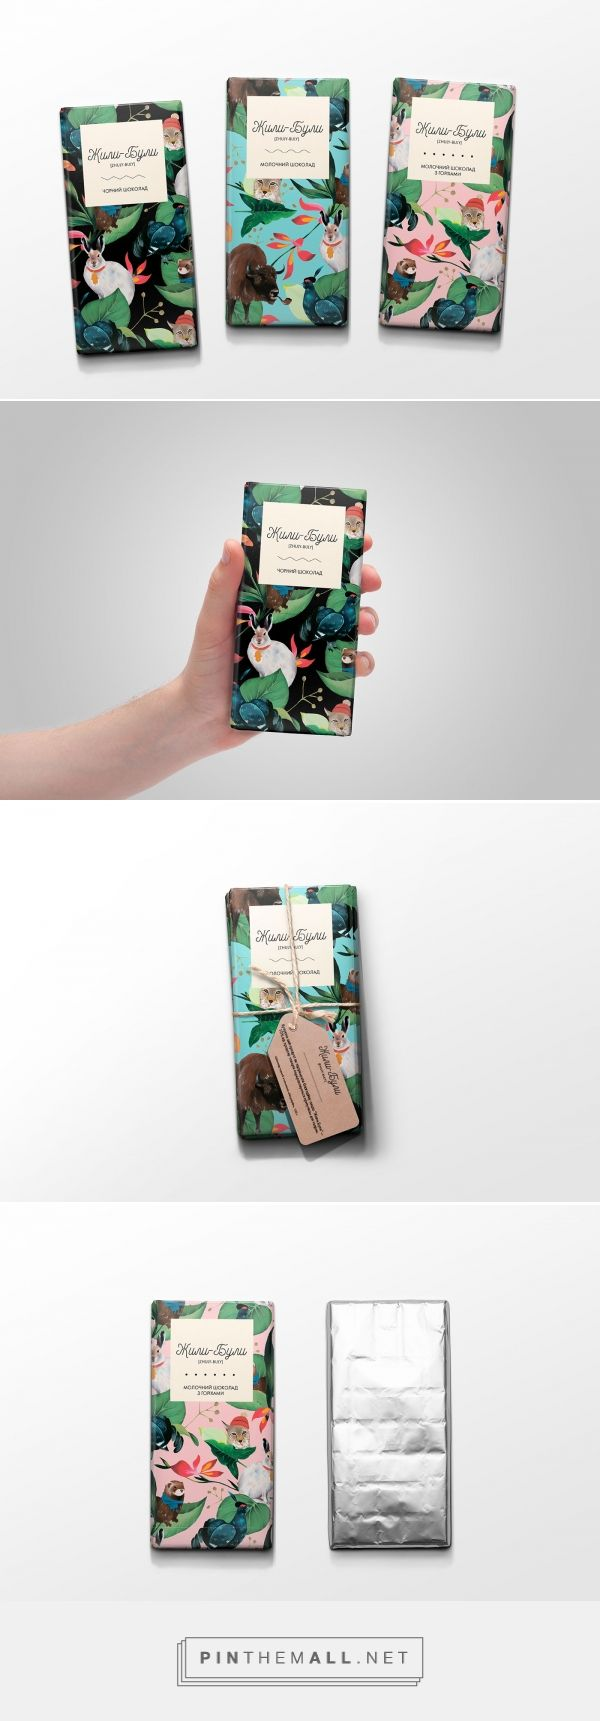 Zhuli-Buli Chocolate by Inna Voevodina. Source: Behance. Pin curated by #SFields99 #packaging #design